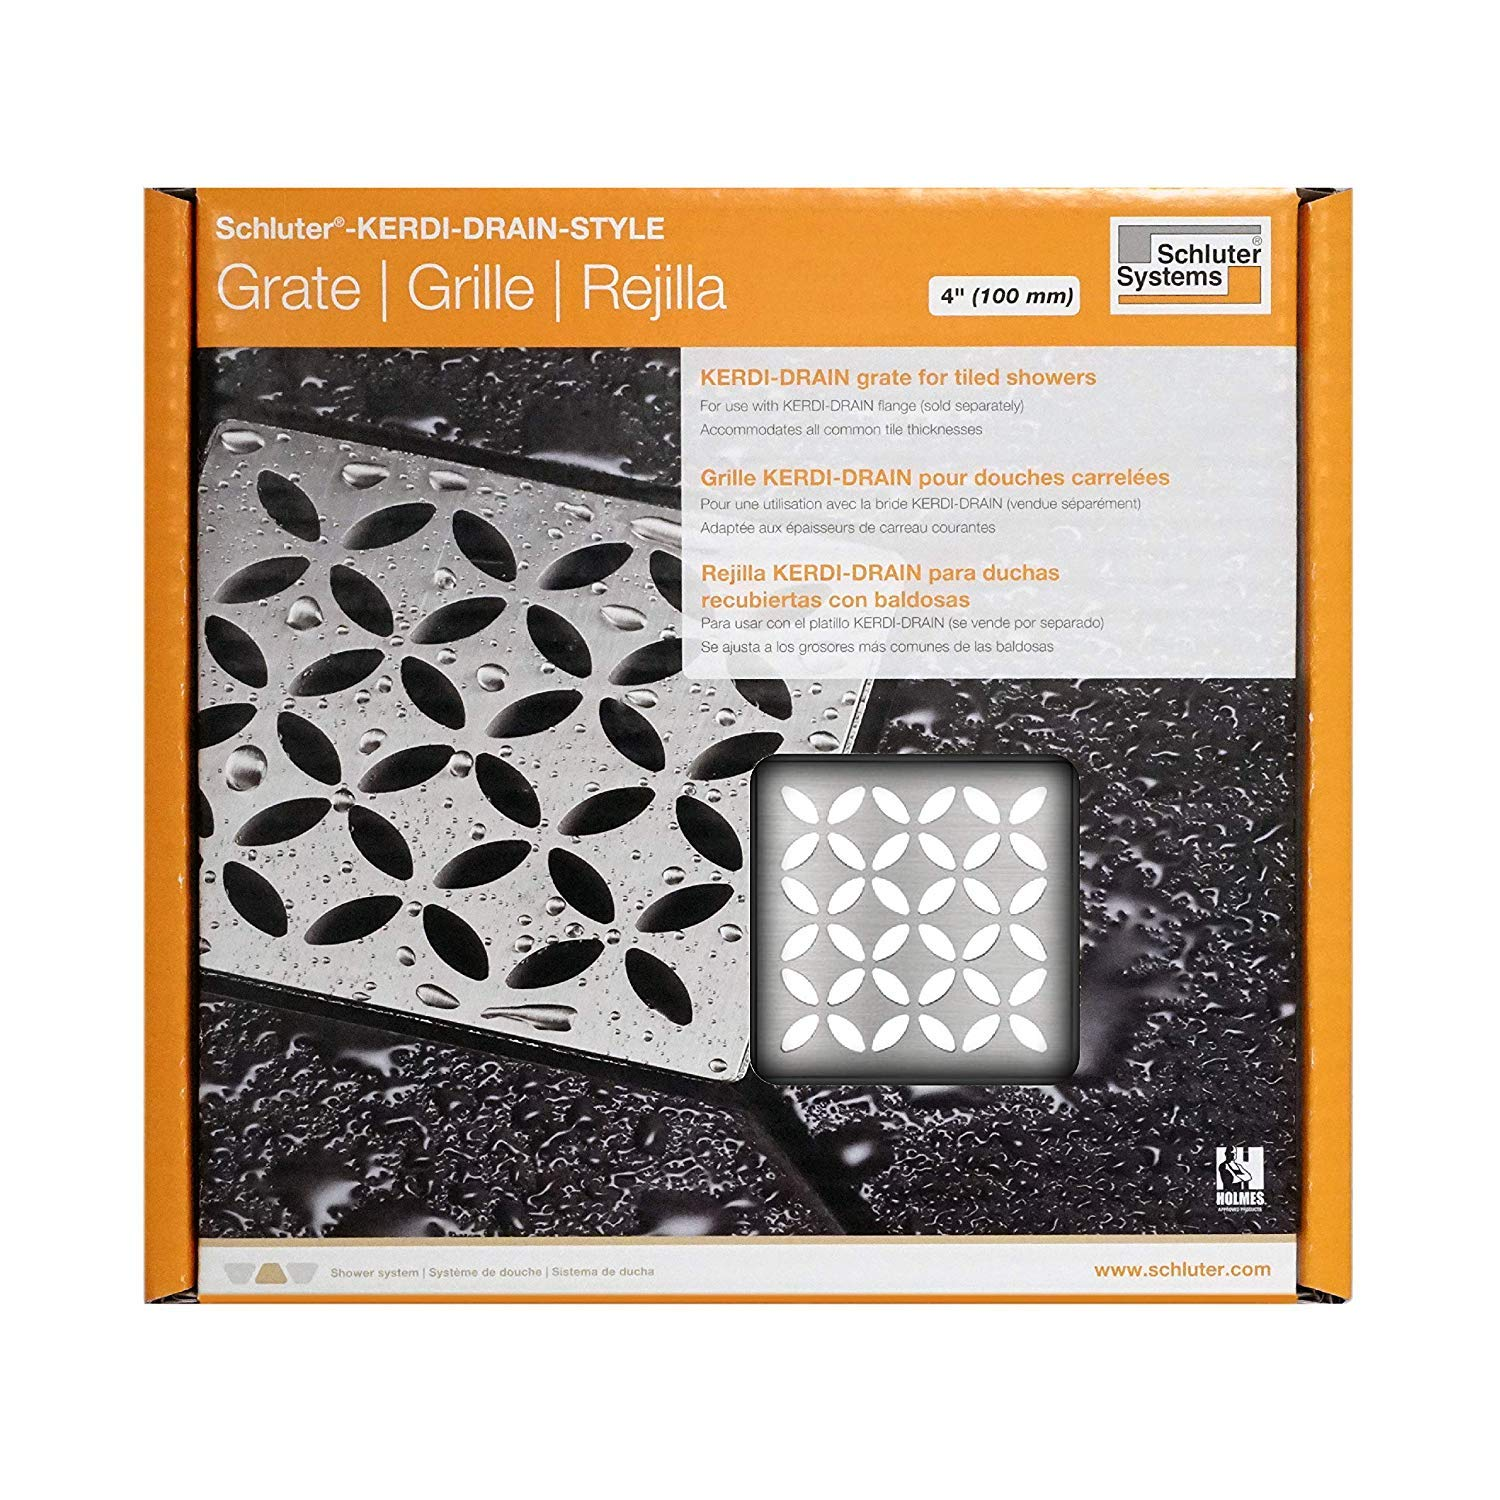 Schluter 4-Inch Floral-style Stainless Steel Drain Grate